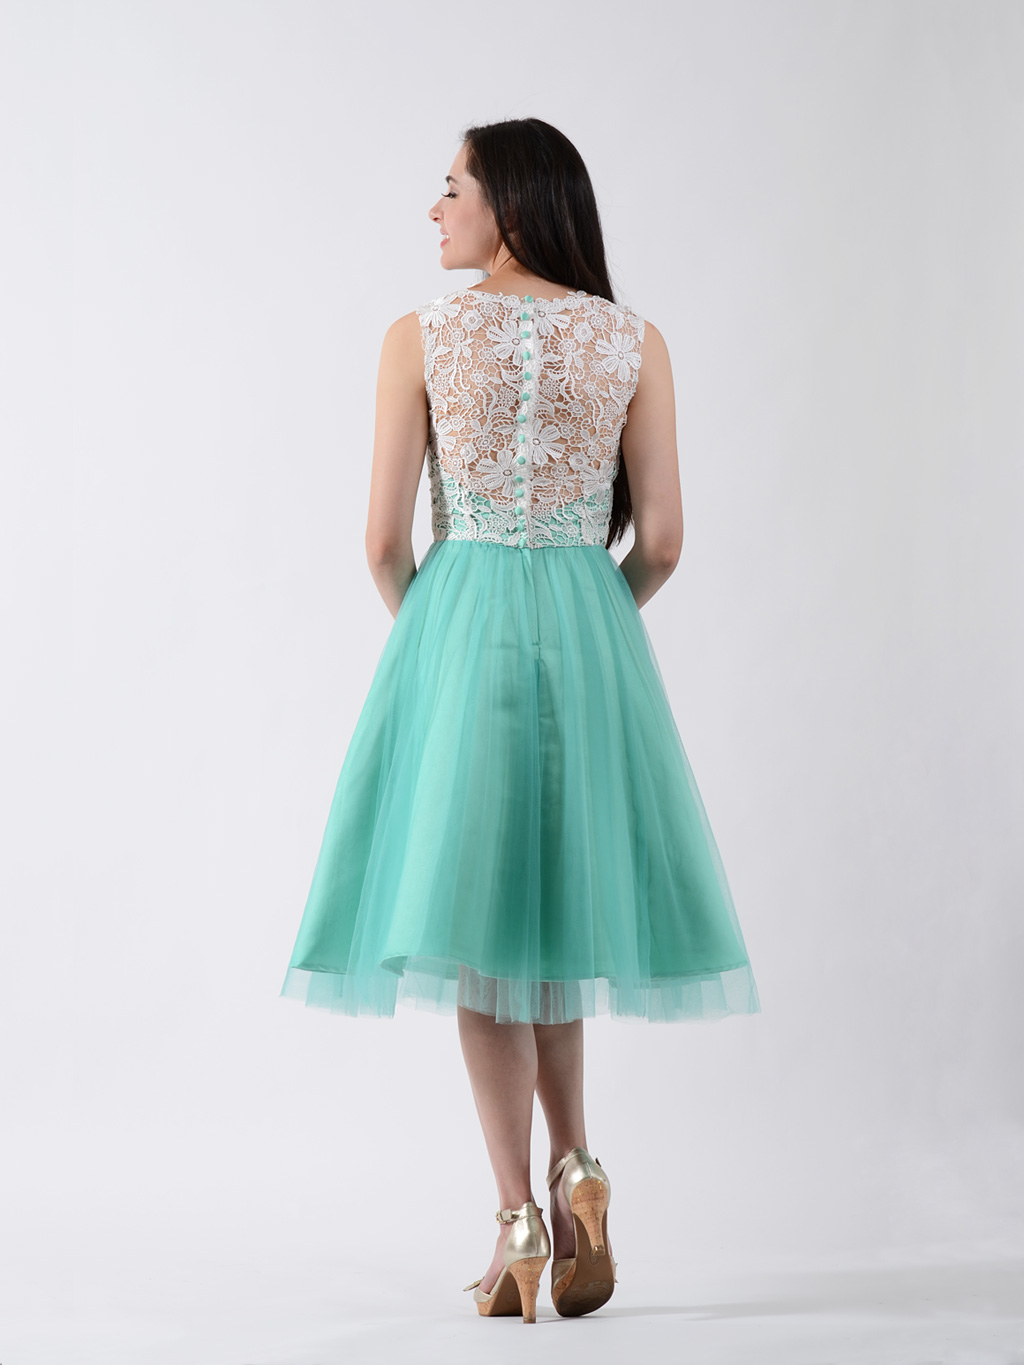 Teal Lace Bridesmaid Dresses Viewing Gallery